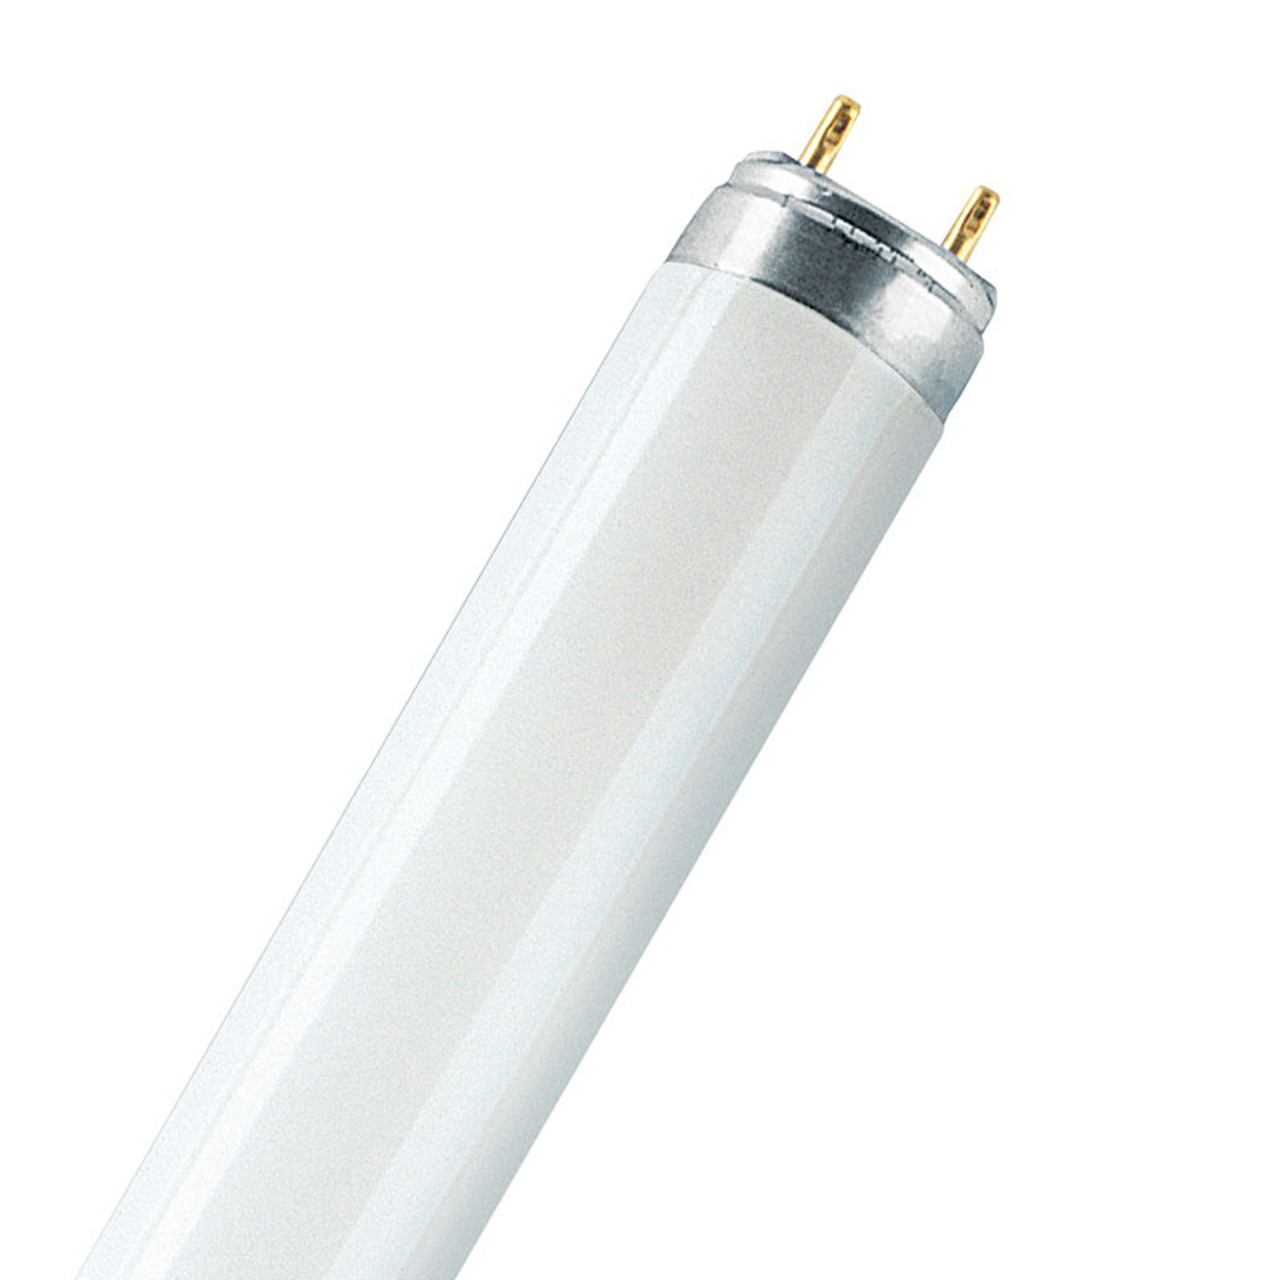 OSRAM SubstiTUBE Star 16-4-W-T8-LED-Röhrenlampe 120 cm- warmweiss